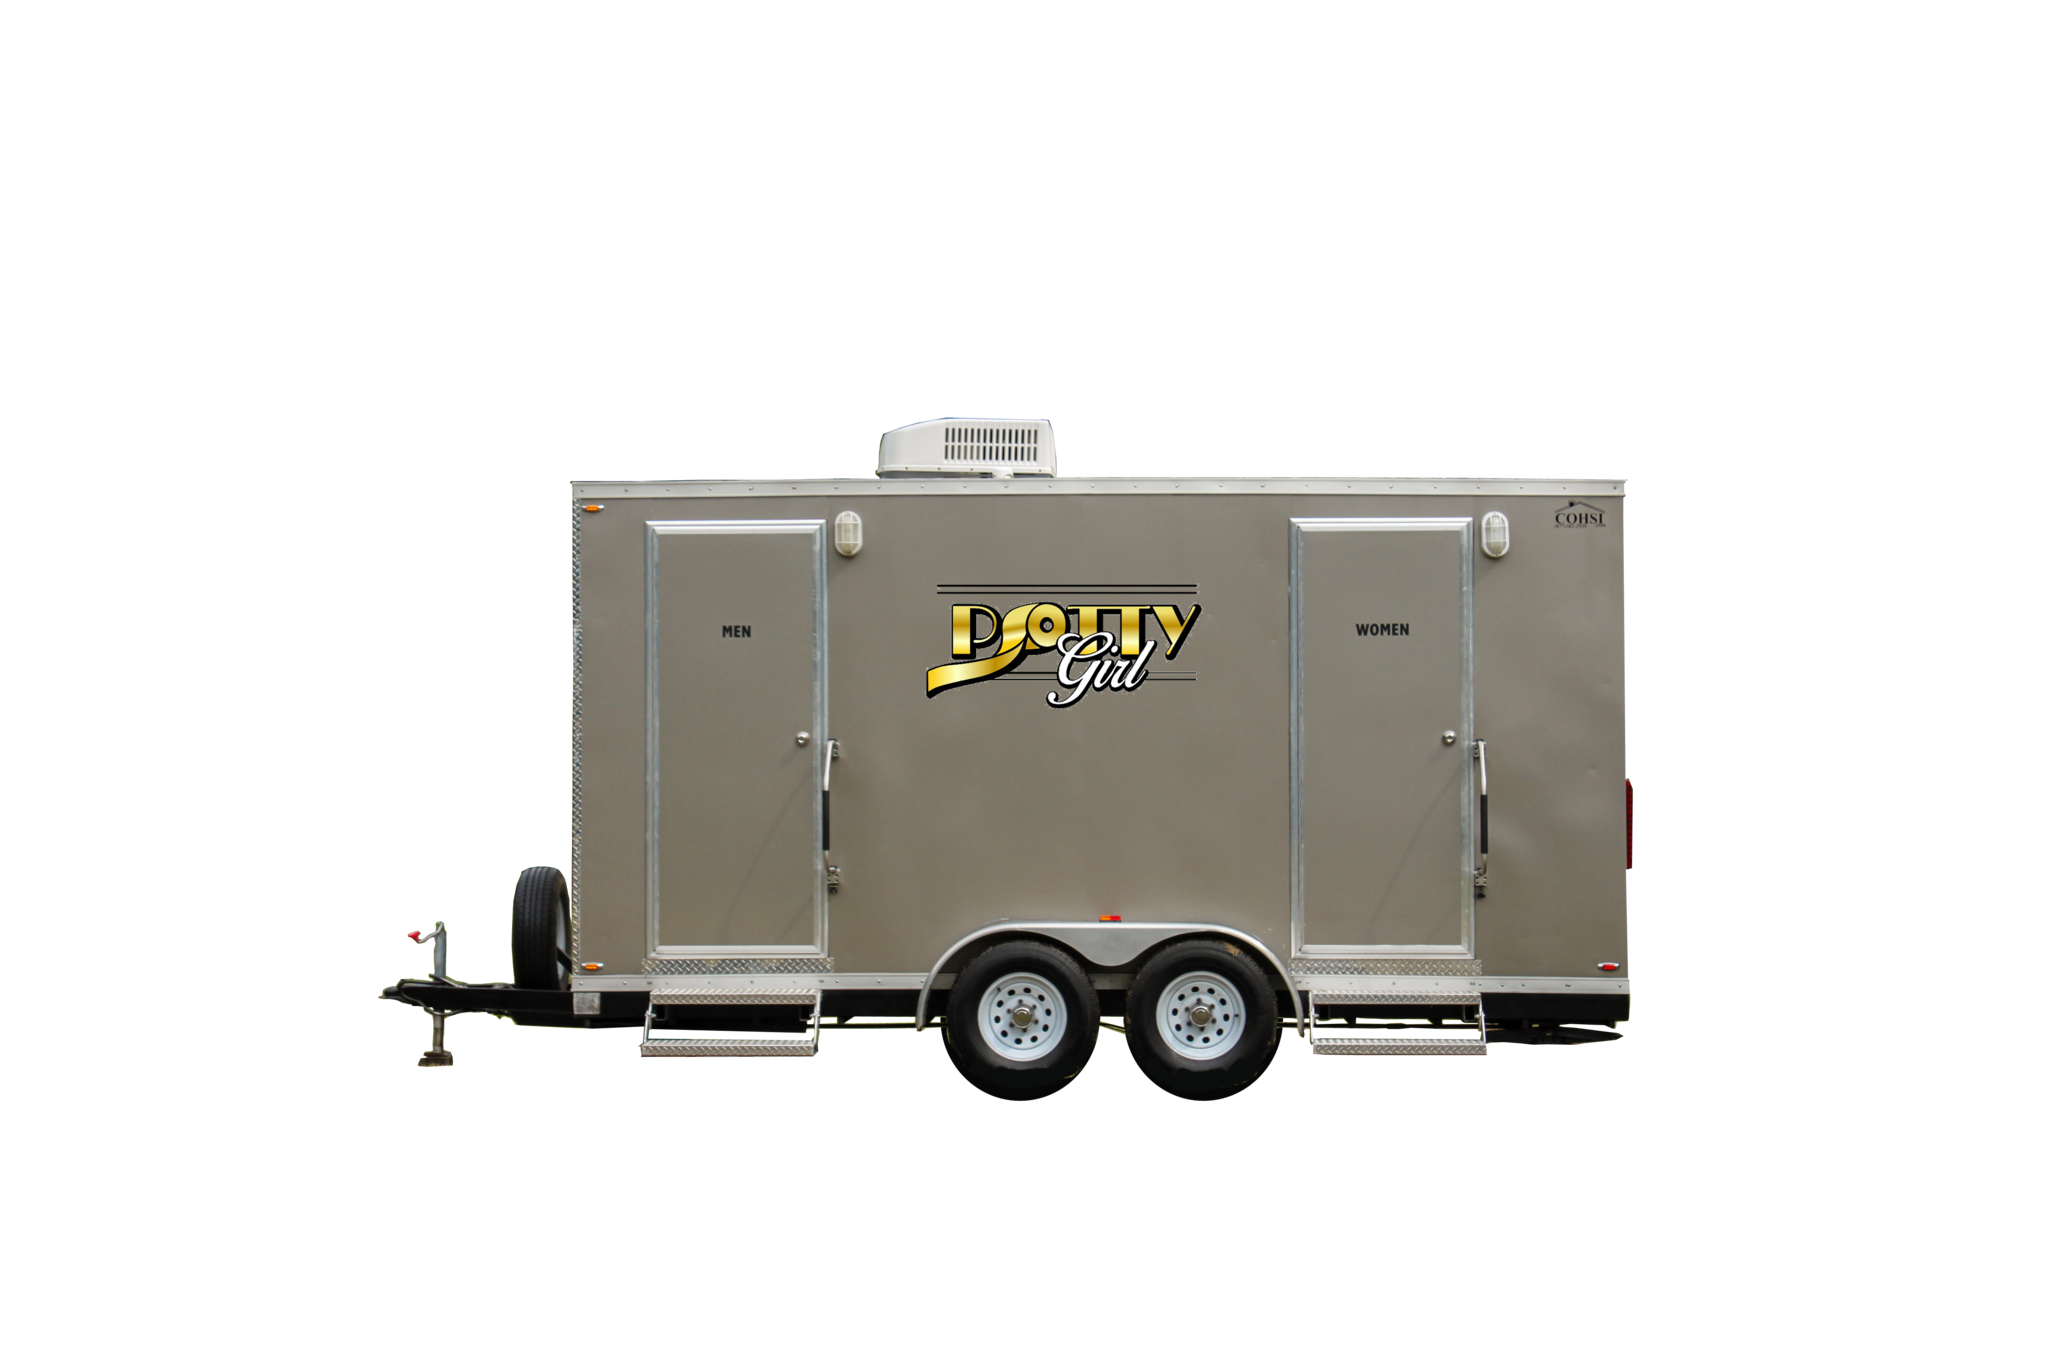 6 Station Comforts of Home Restroom Trailer Rental - PottyGirl